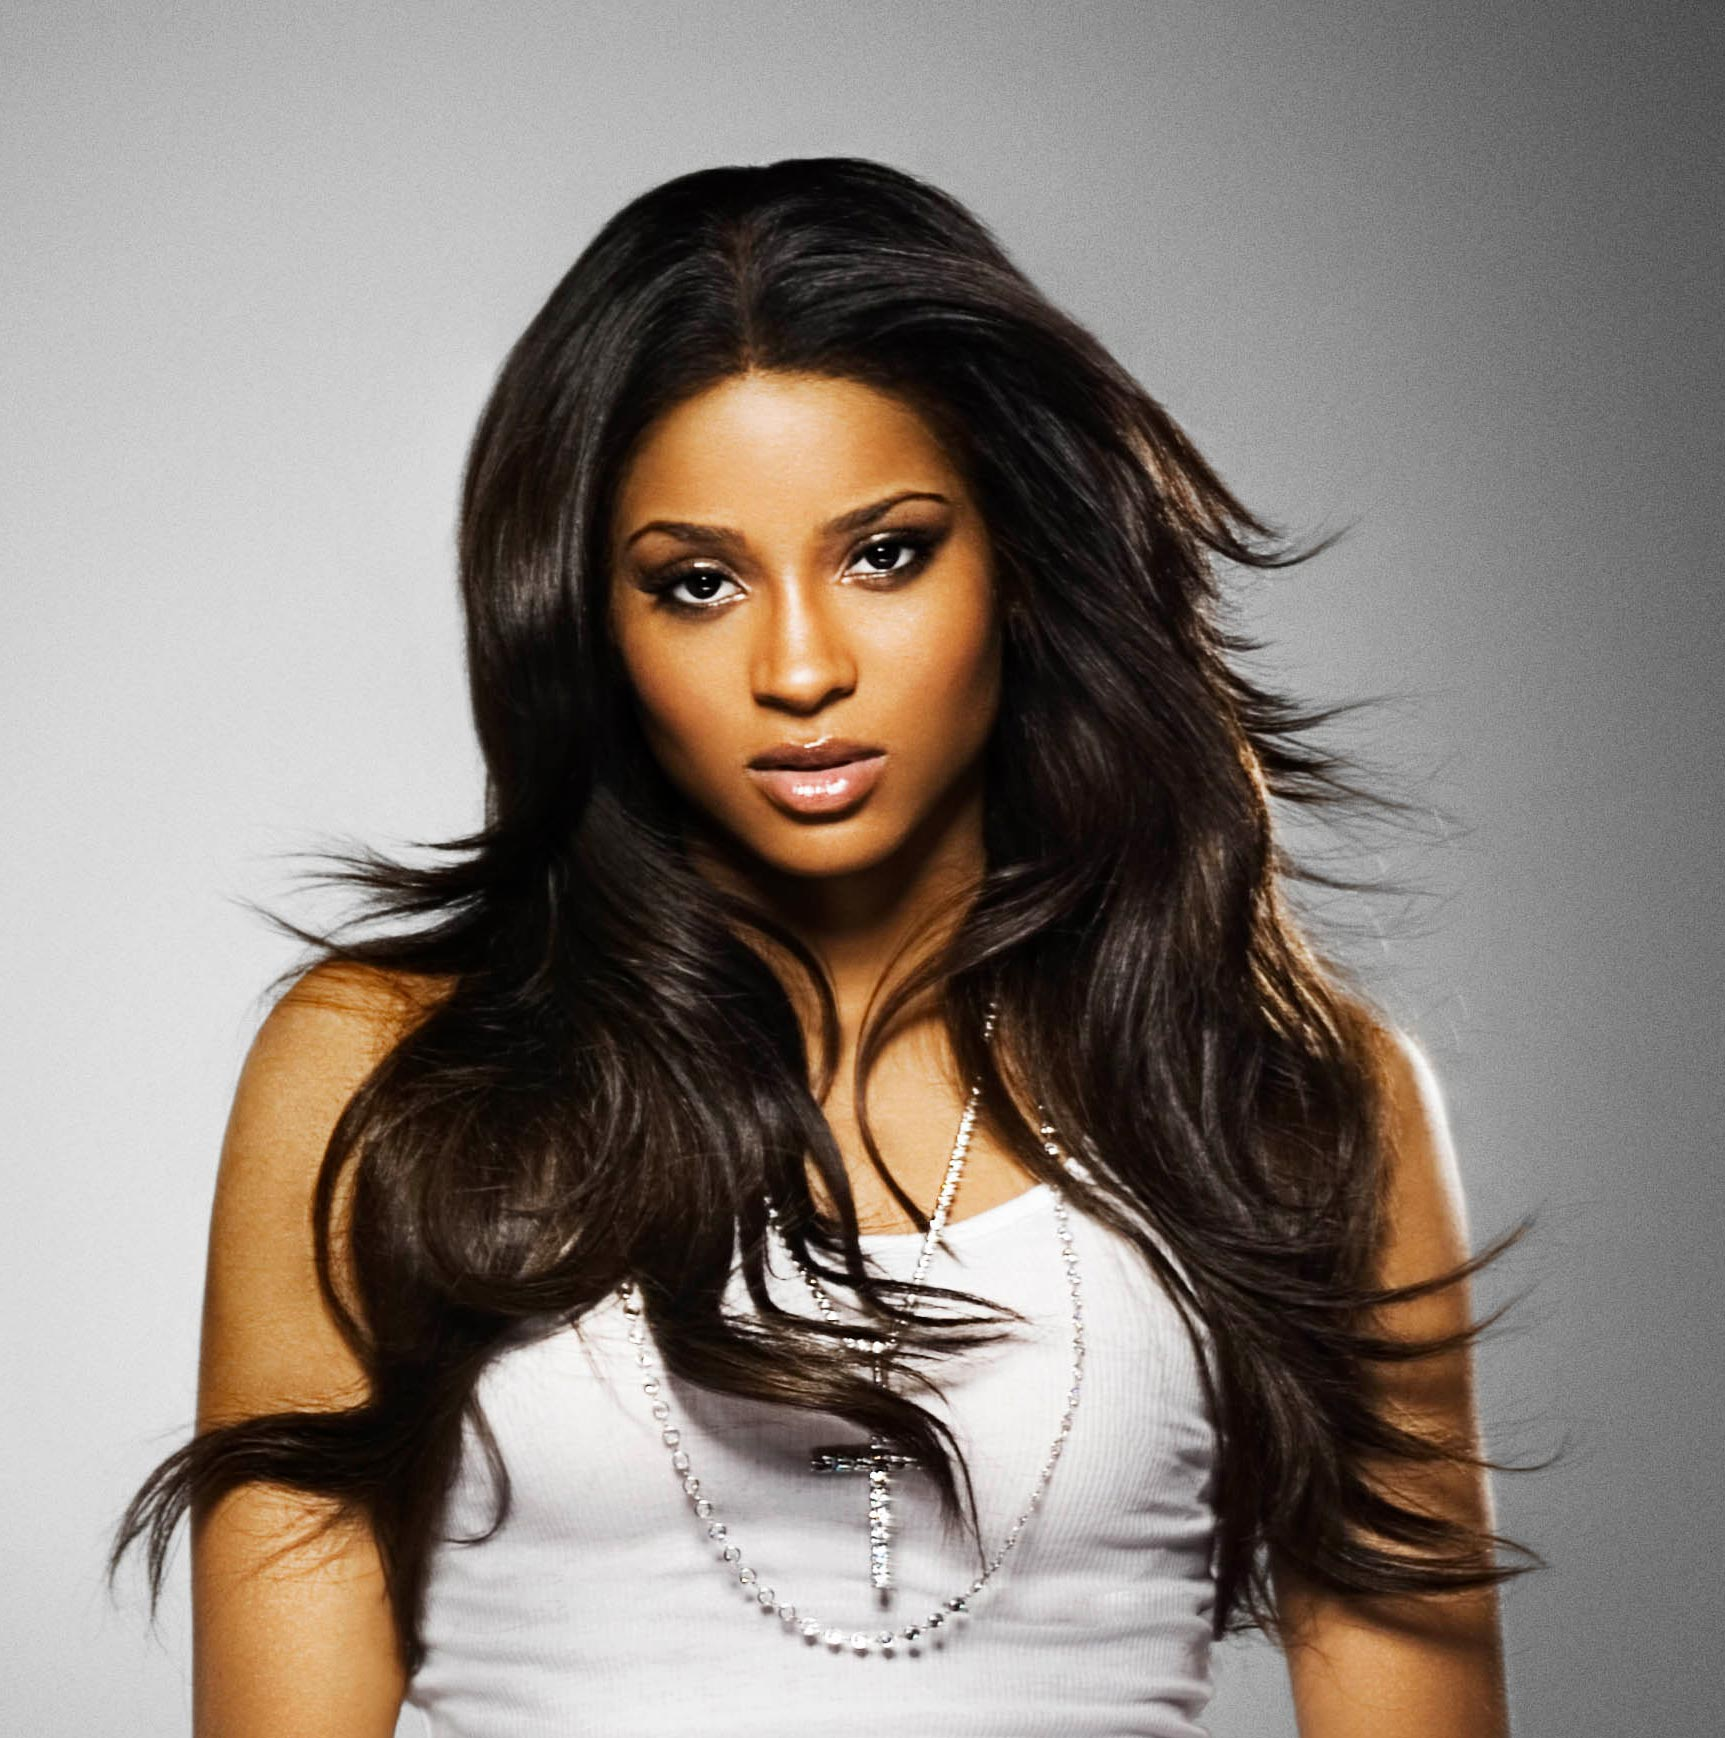 VIDEO: Ciara Confirms Upcoming Performance At Love Like A Movie 3 In Lagos On February 28